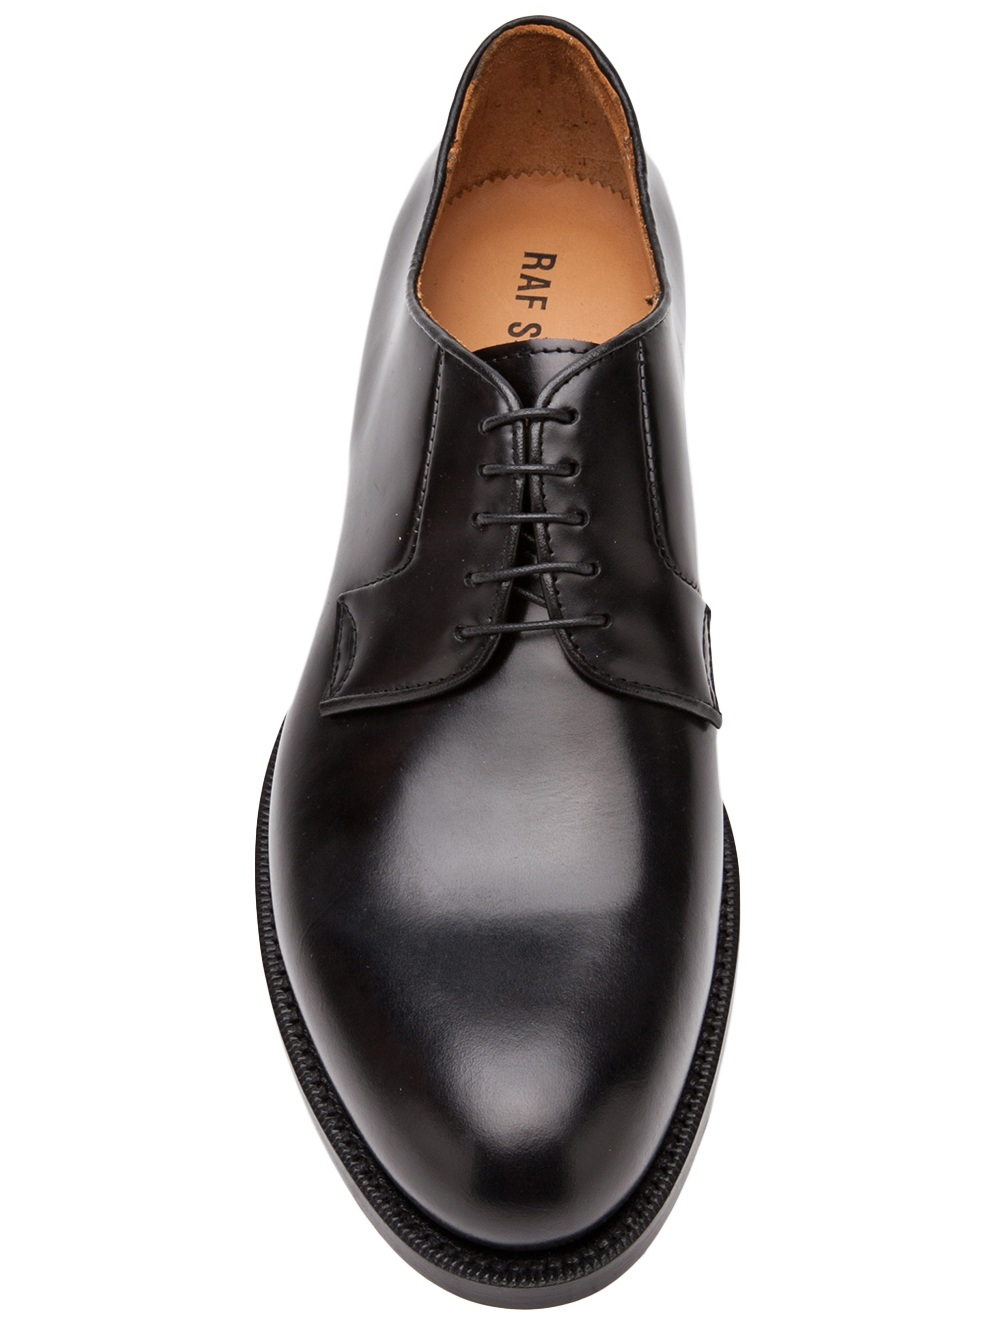 Raf Simons Laceup Dress Shoes in Black for Men